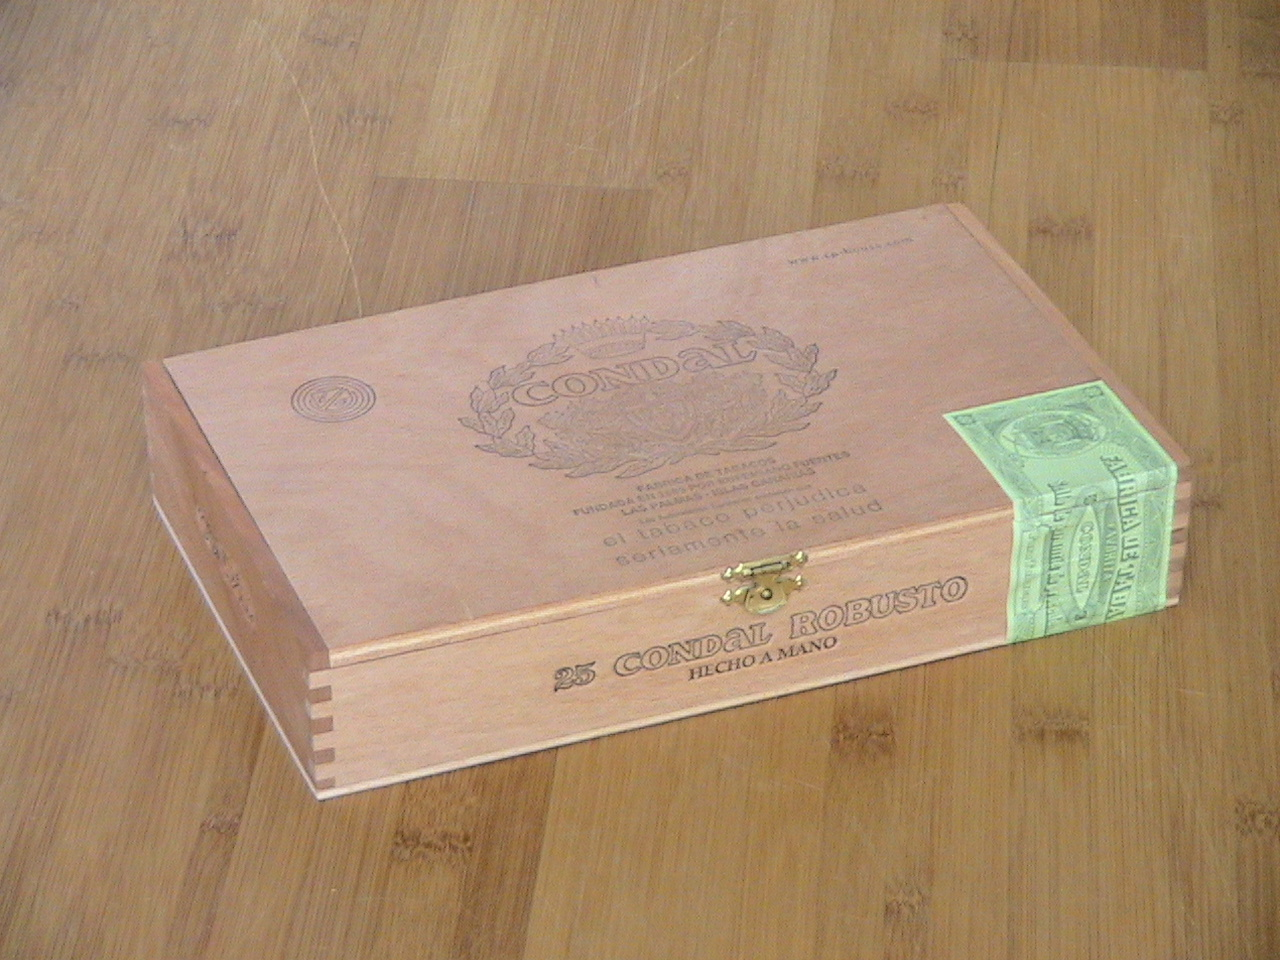 Cigar Box Condal Stock002 by BlackTowerOfTime 1280x960